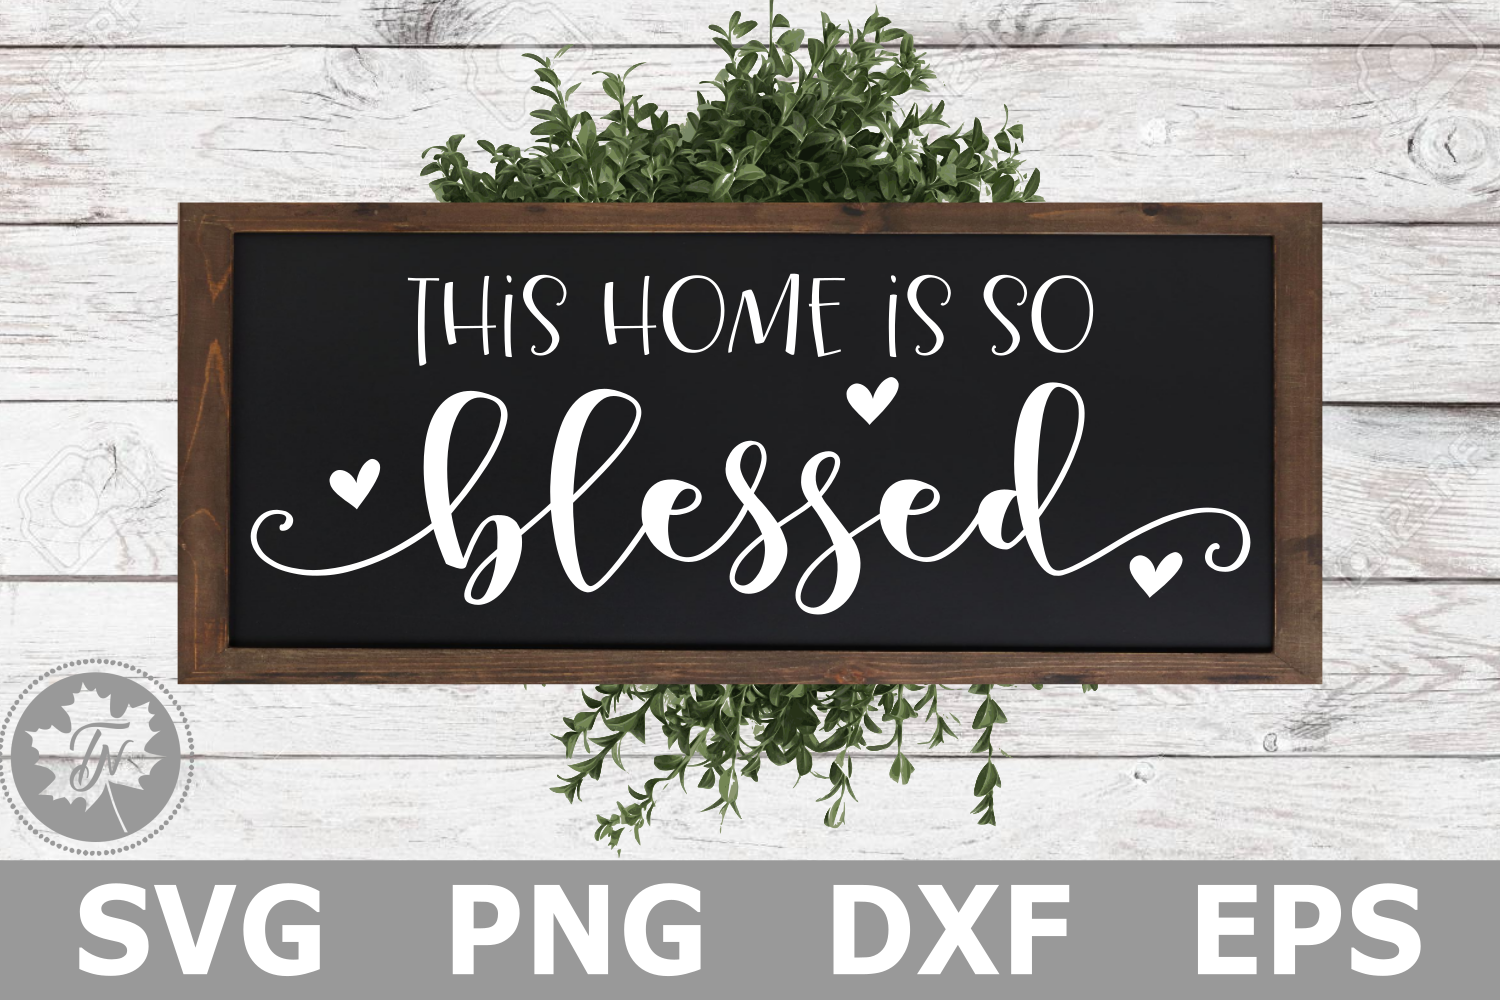 This Home is so Blessed - A Religious SVG Cut File example image 1